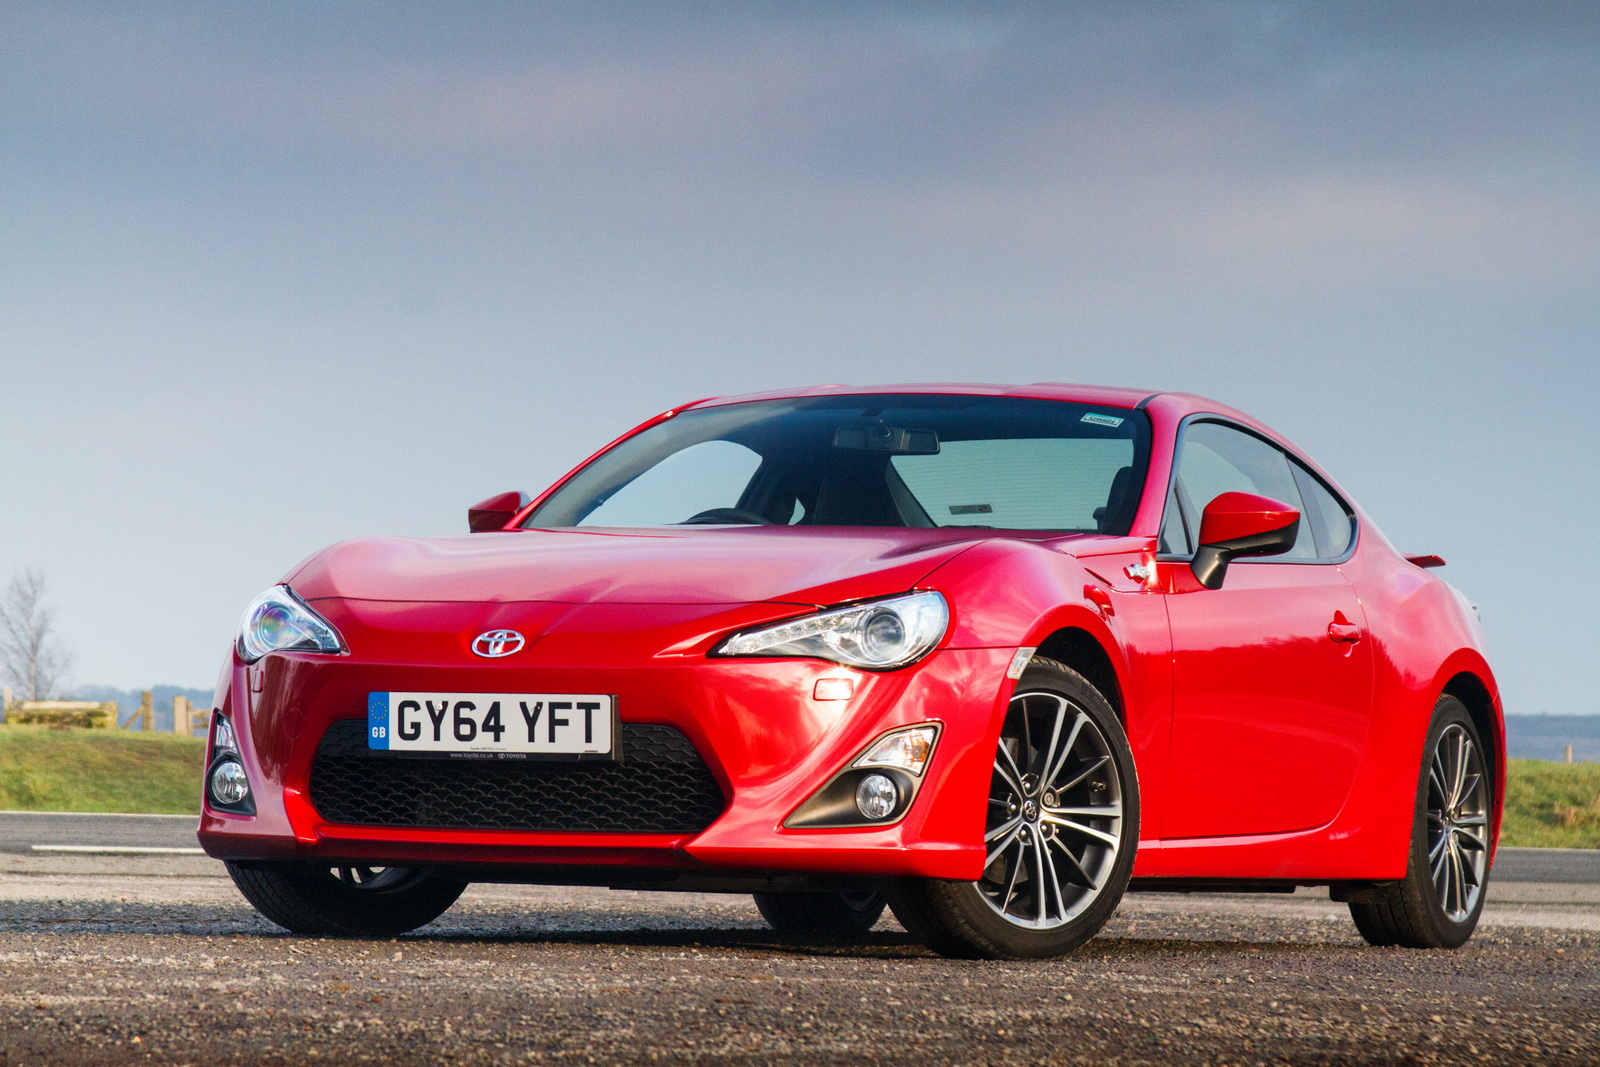 Very Best Sports Car Wallpaper Toyota Developing A Smaller Sub Gt86 Rwd Sports Car